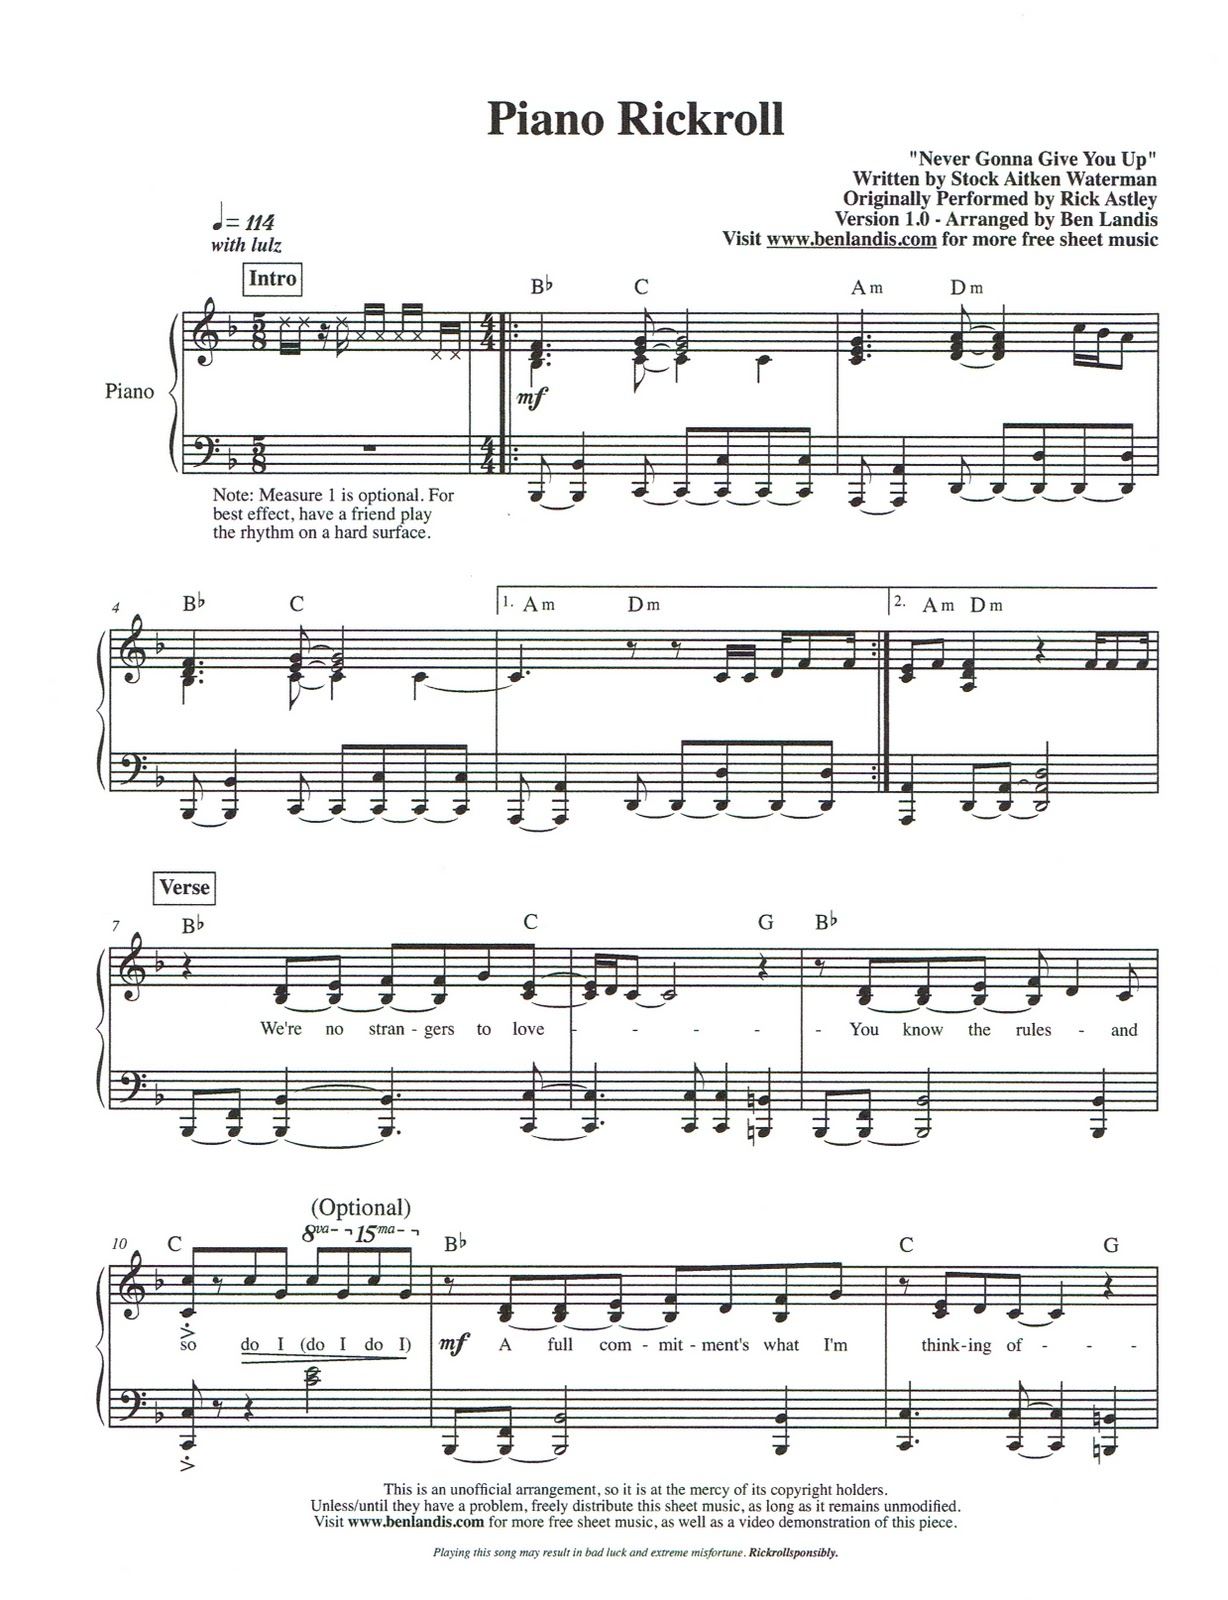 Sheet Music Soad727 Rick Astley Never Gonna Give You Up